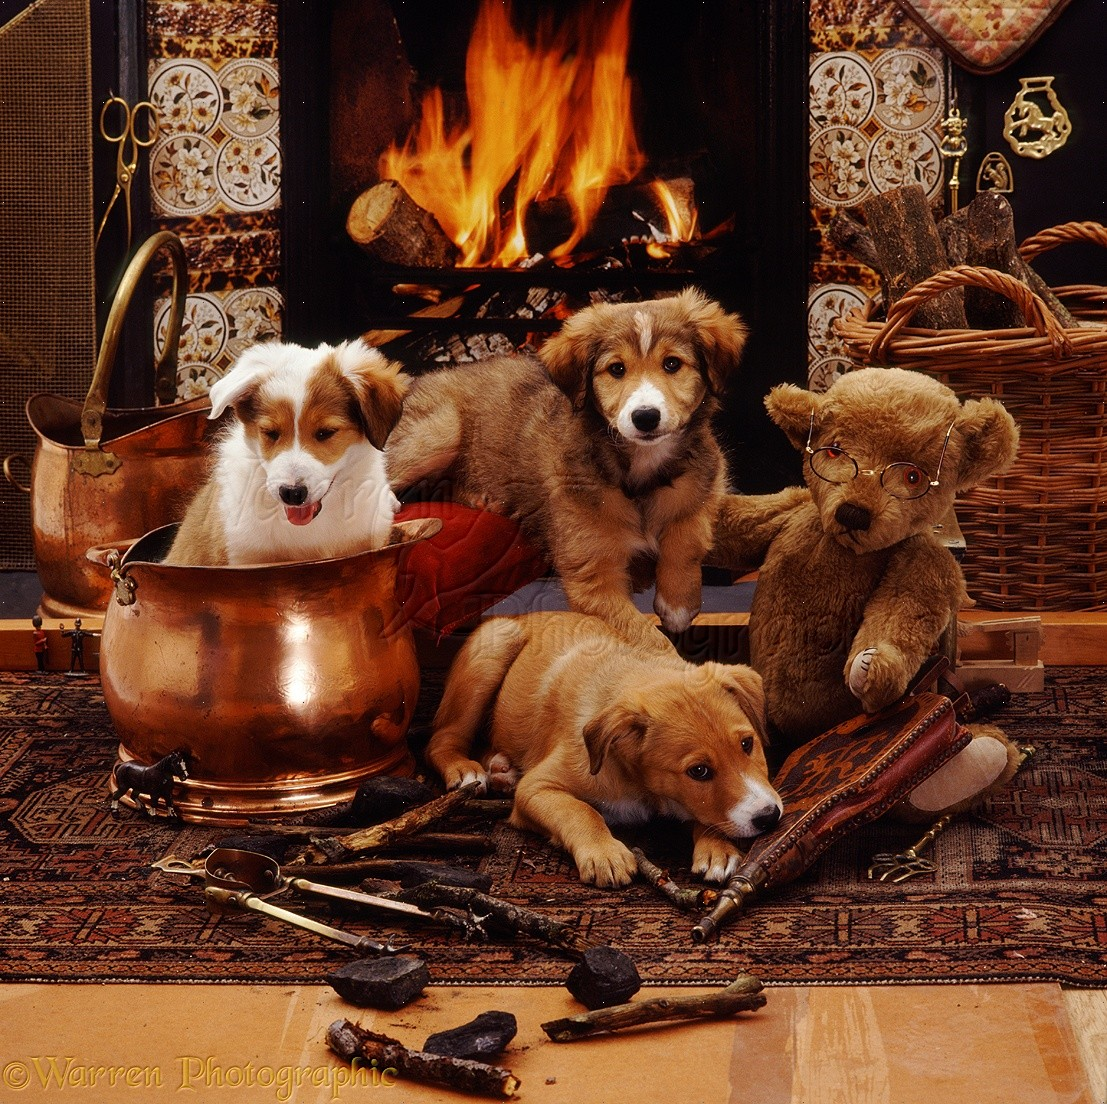 Dogs: Border Collie pups by fireplace photo - WP09127